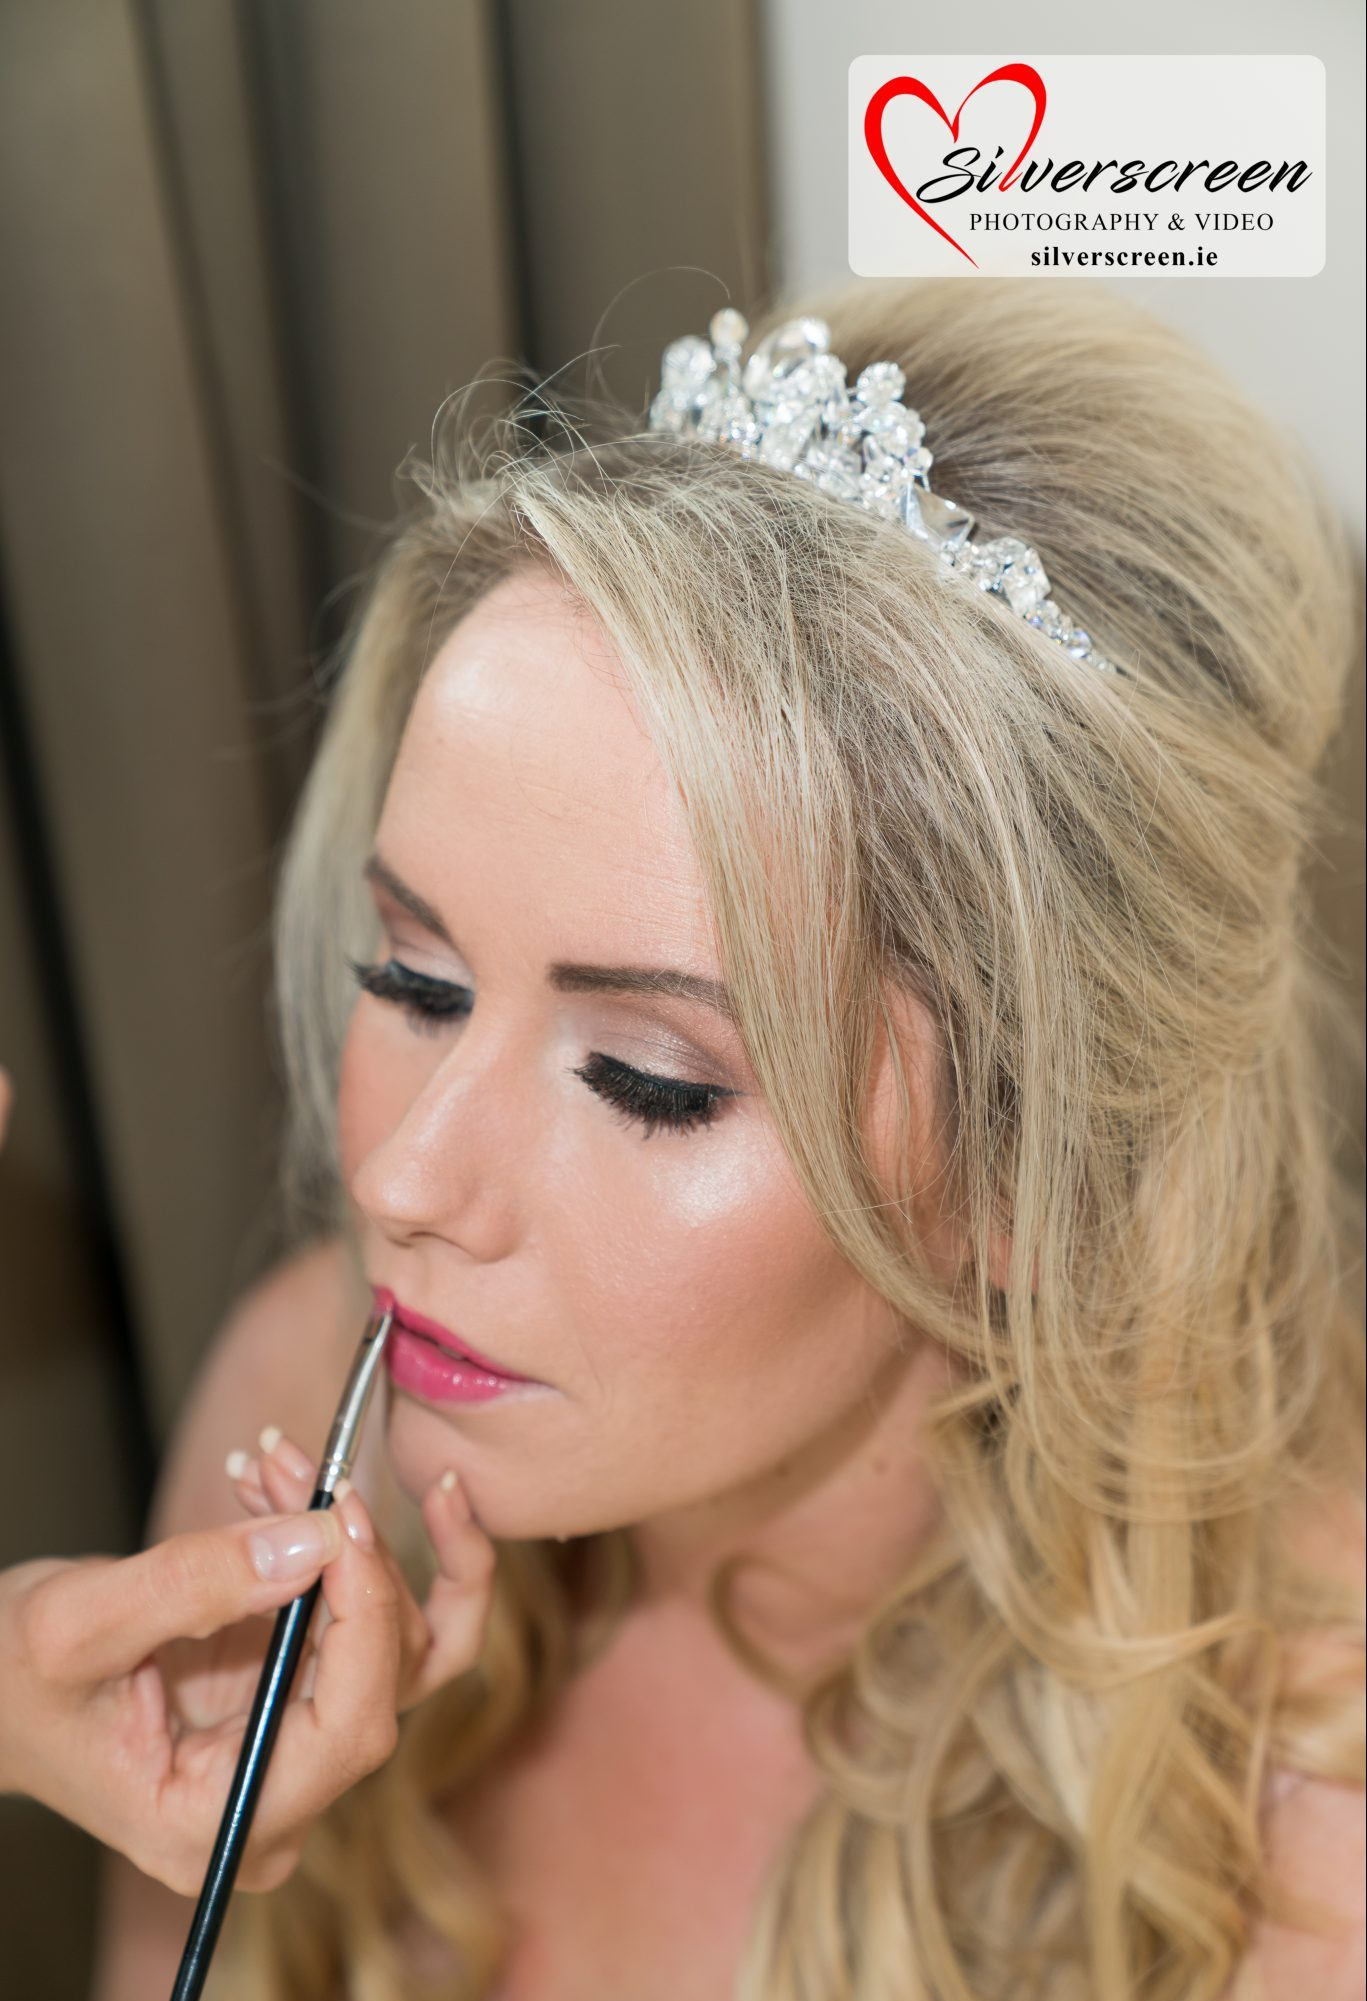 Bridal Preparations - Wedding Photographer & Videographer Gallery